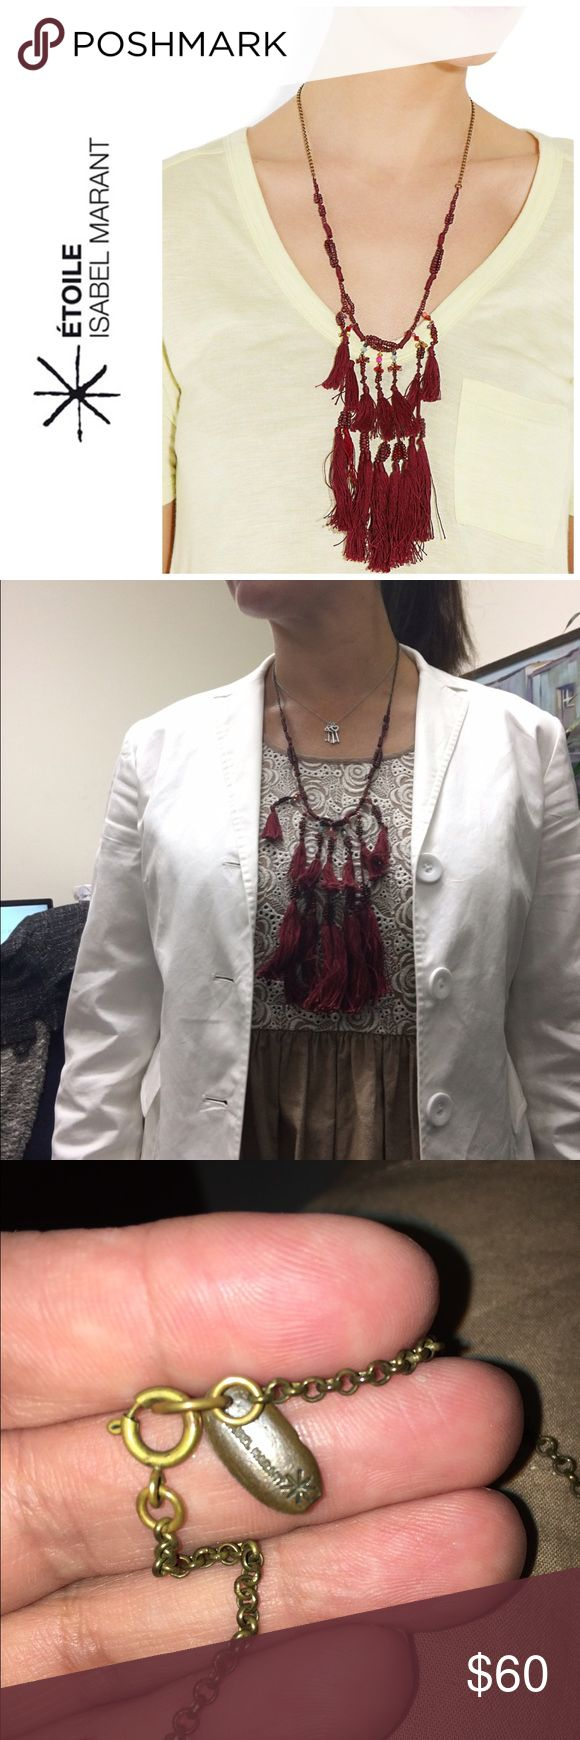 "Isabel Marant Etoile ""Cy & me"" tassel necklace Designer necklace by Etoile for Isabel Marant . Red threading on a brass chainlink necklace . In excellent condition . Just purchased last year for $198 at Neiman Marcus . Great necklace for the summer or fall. Will bundle for 10% off Isabel Marant Jewelry Necklaces"